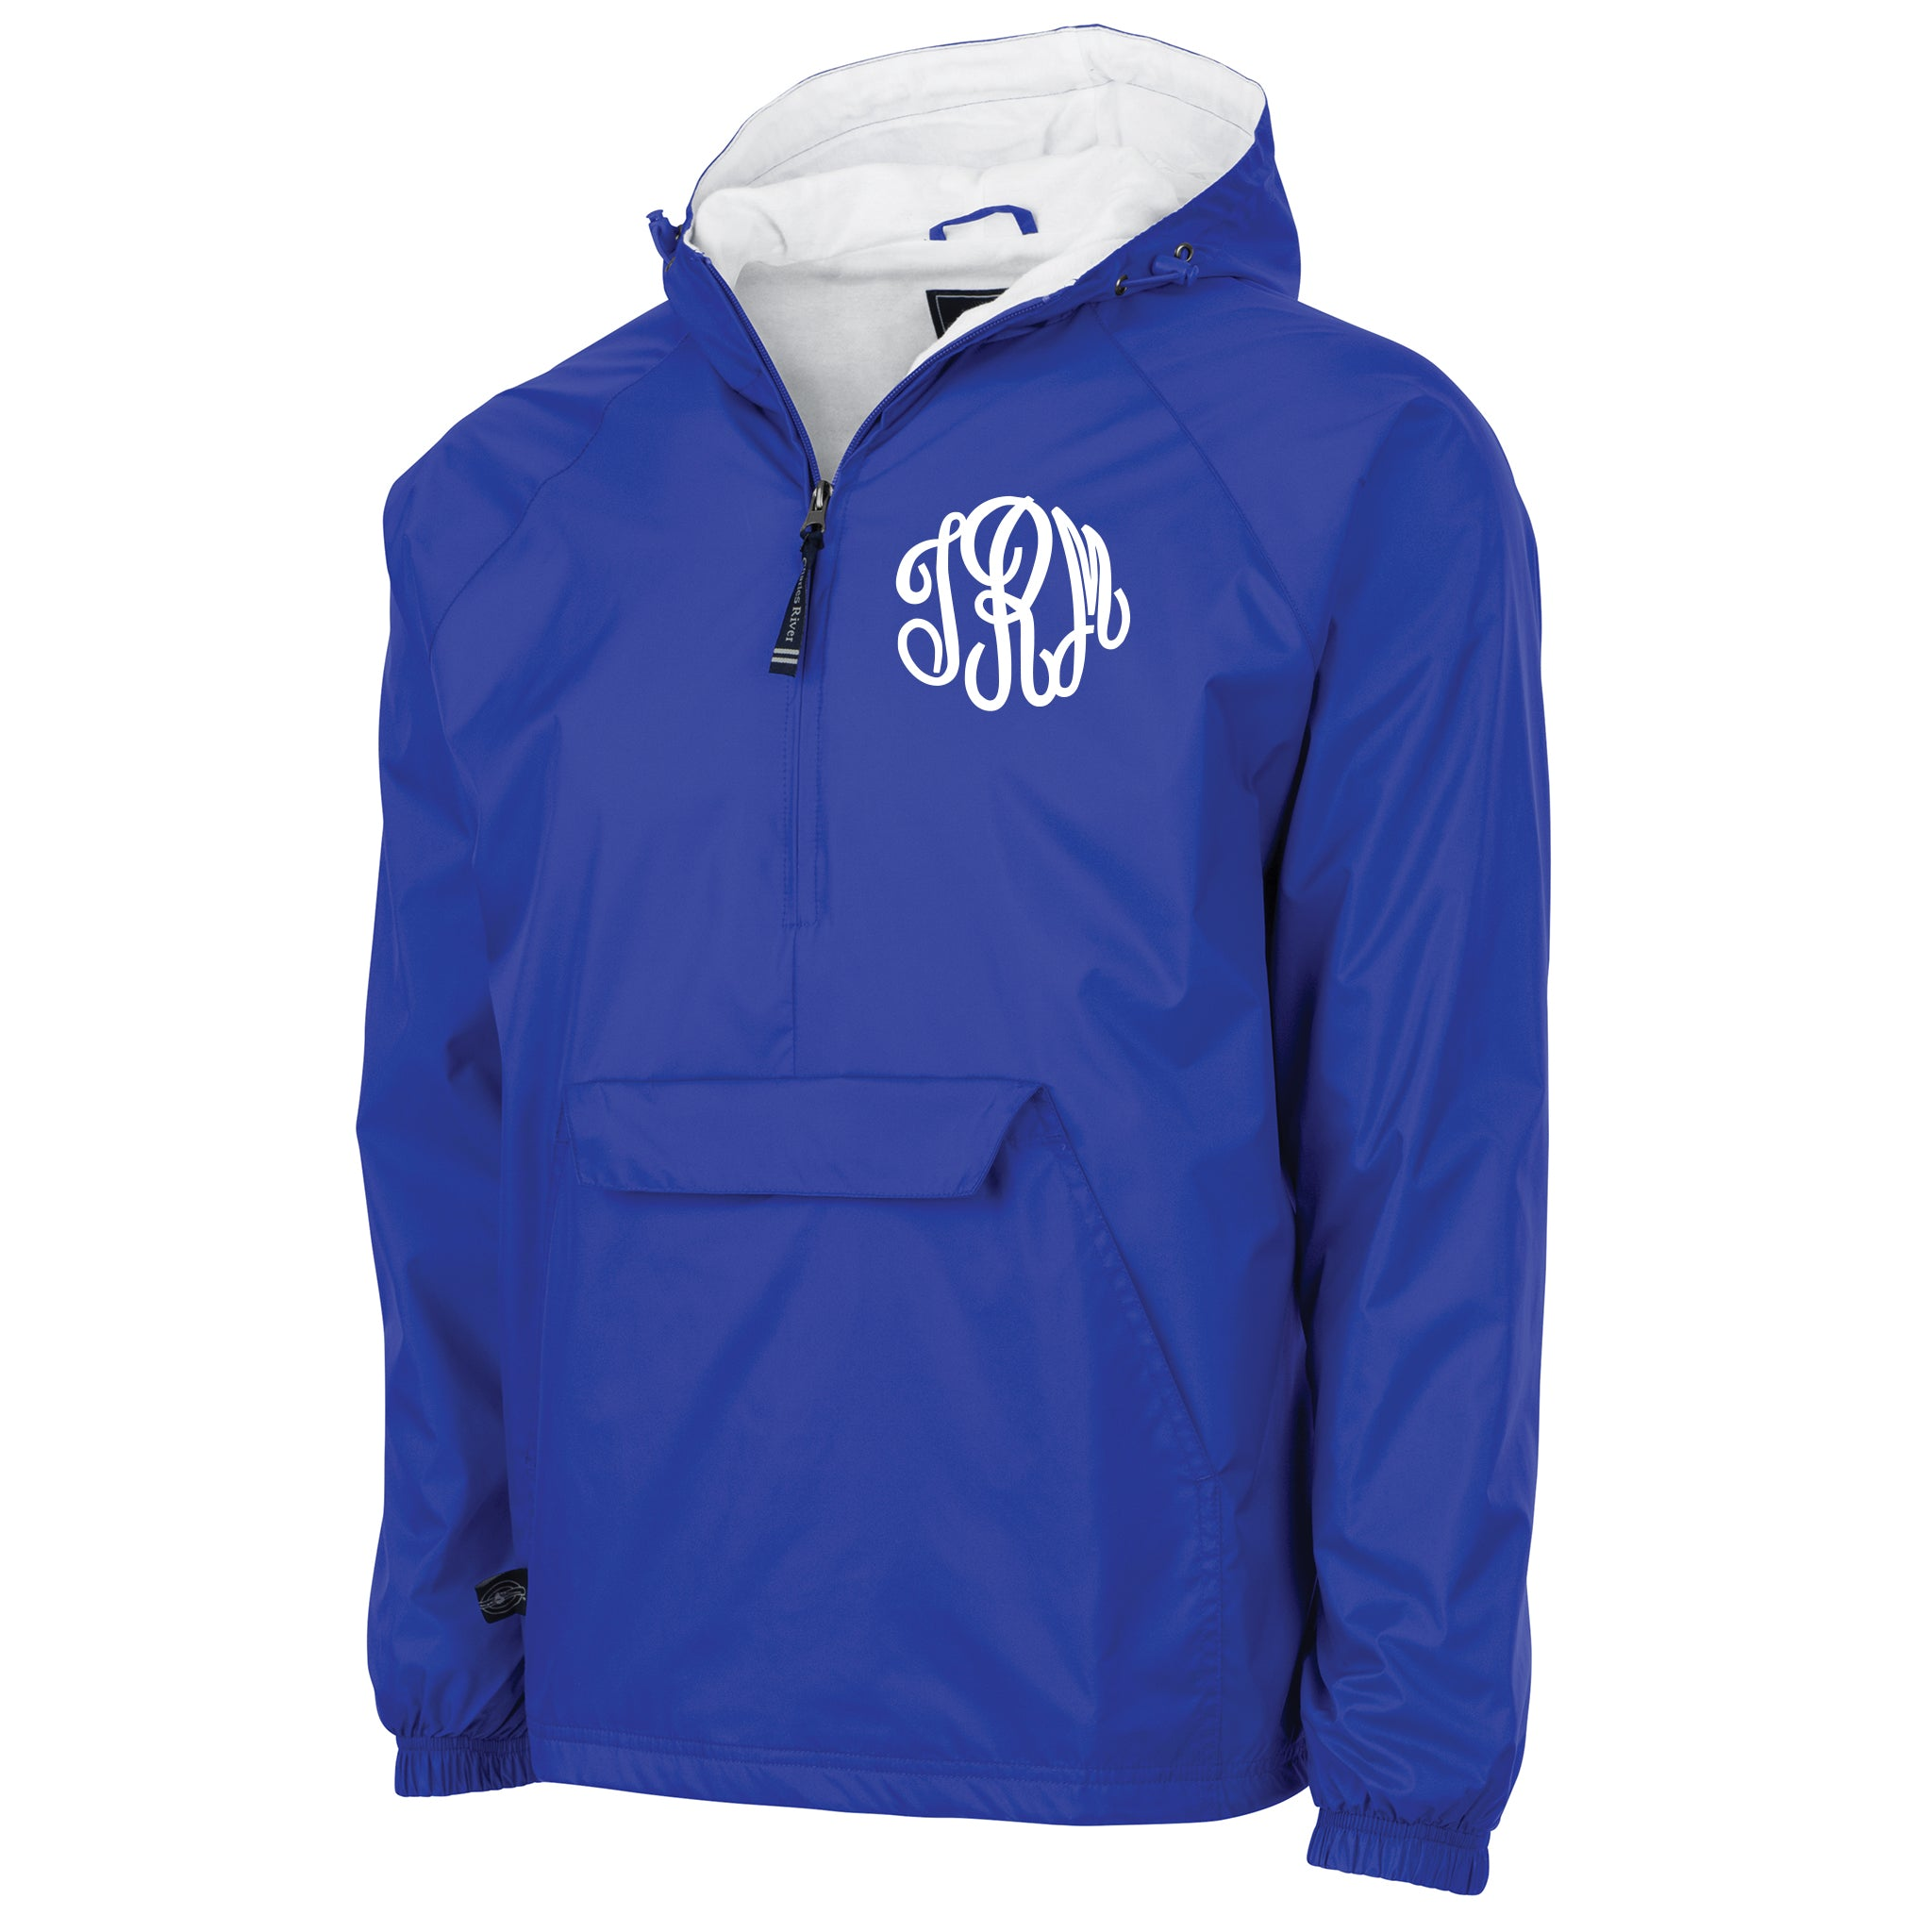 Monogrammed Windbreaker Pullover in Royal Blue